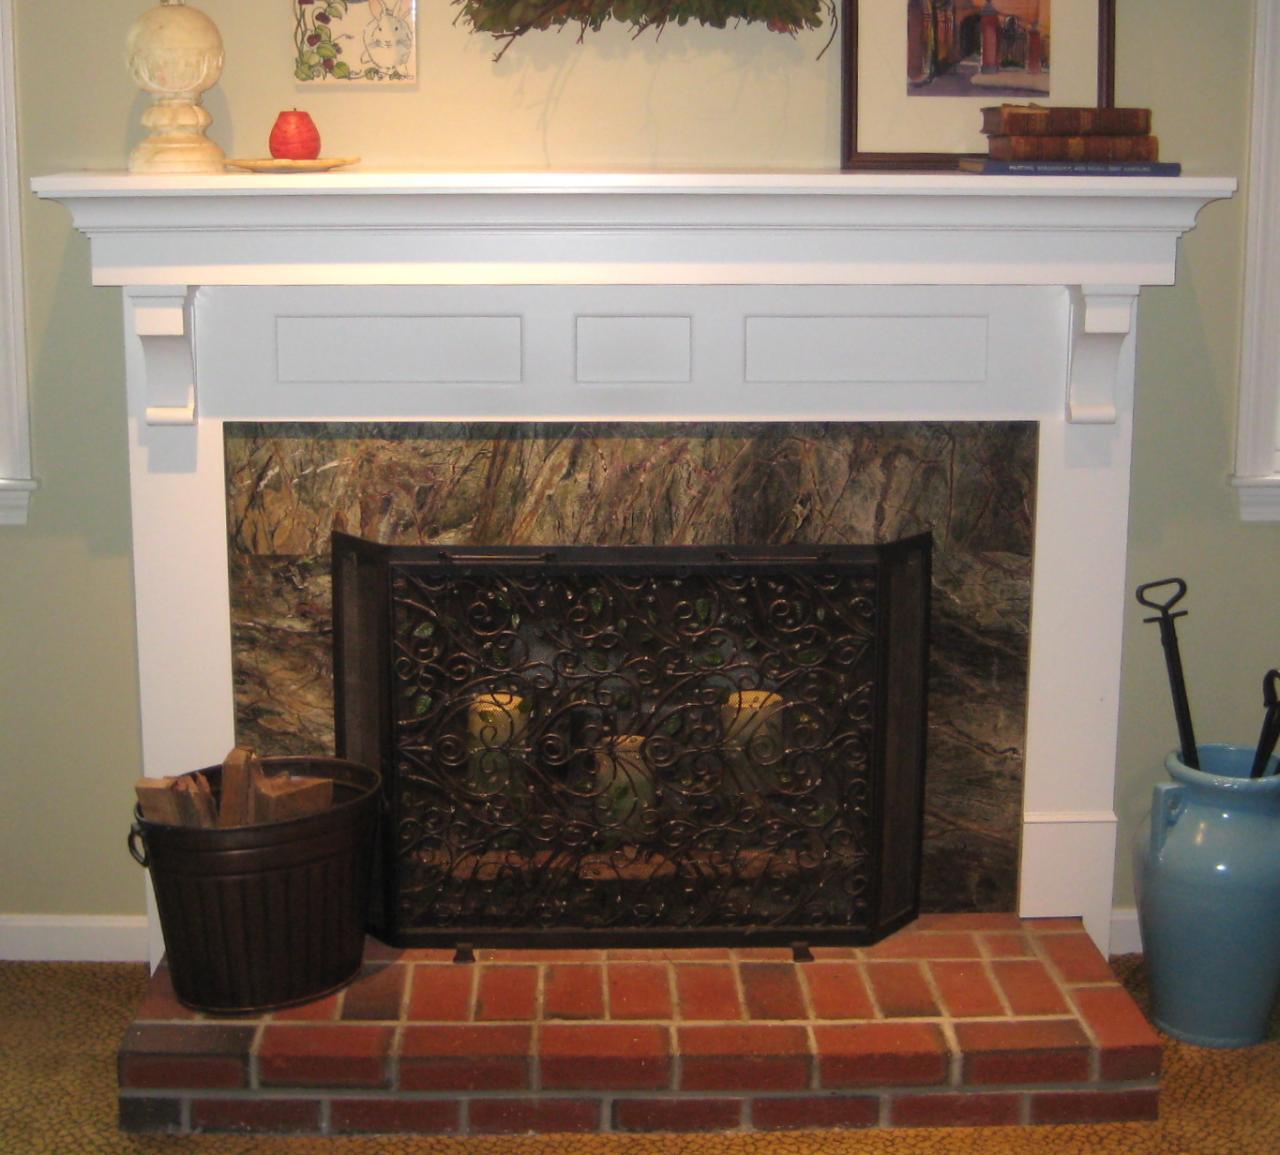 marble-fireplace-surround-ideas-photo-8